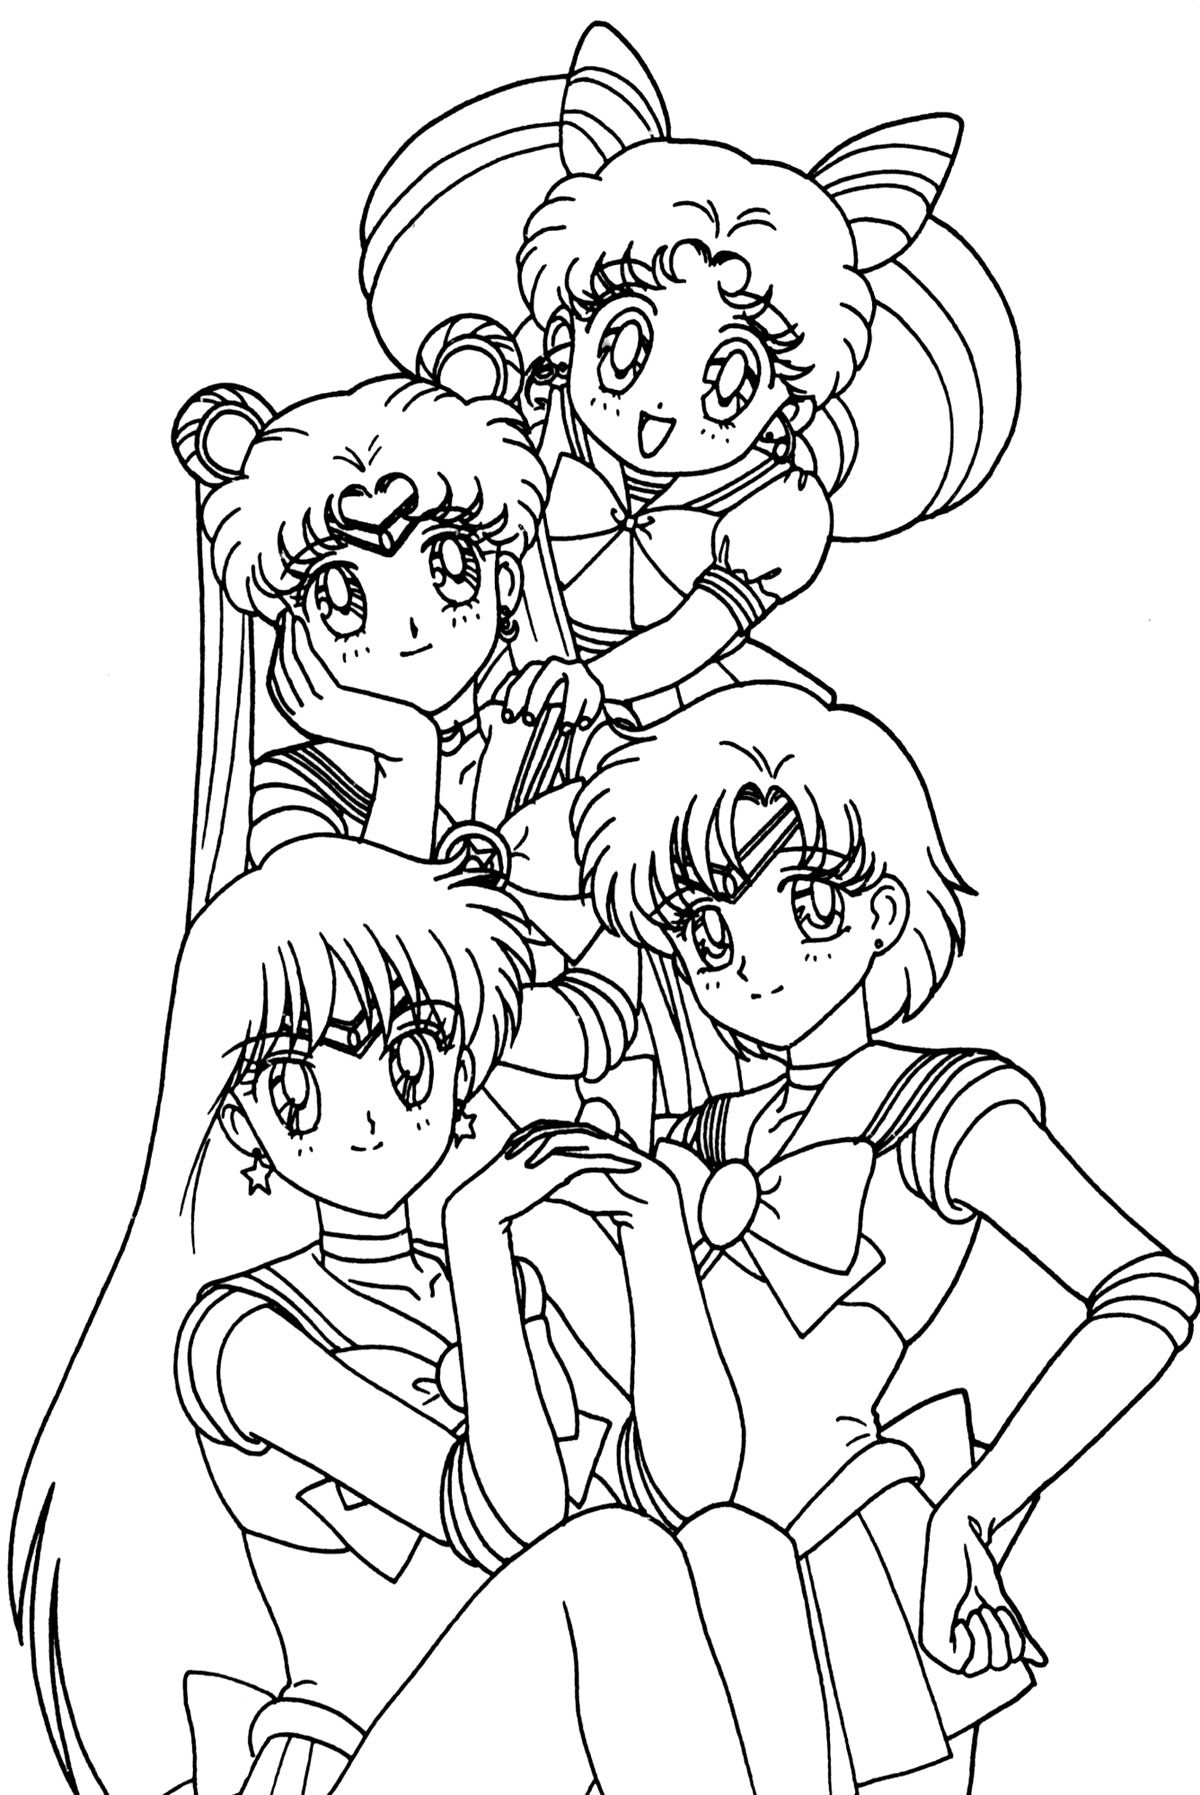 Http Www Hollowmoon Net Sites Tsuki Groups Group049 Jpg Moon Coloring Pages Sailor Moon Coloring Pages Cartoon Coloring Pages